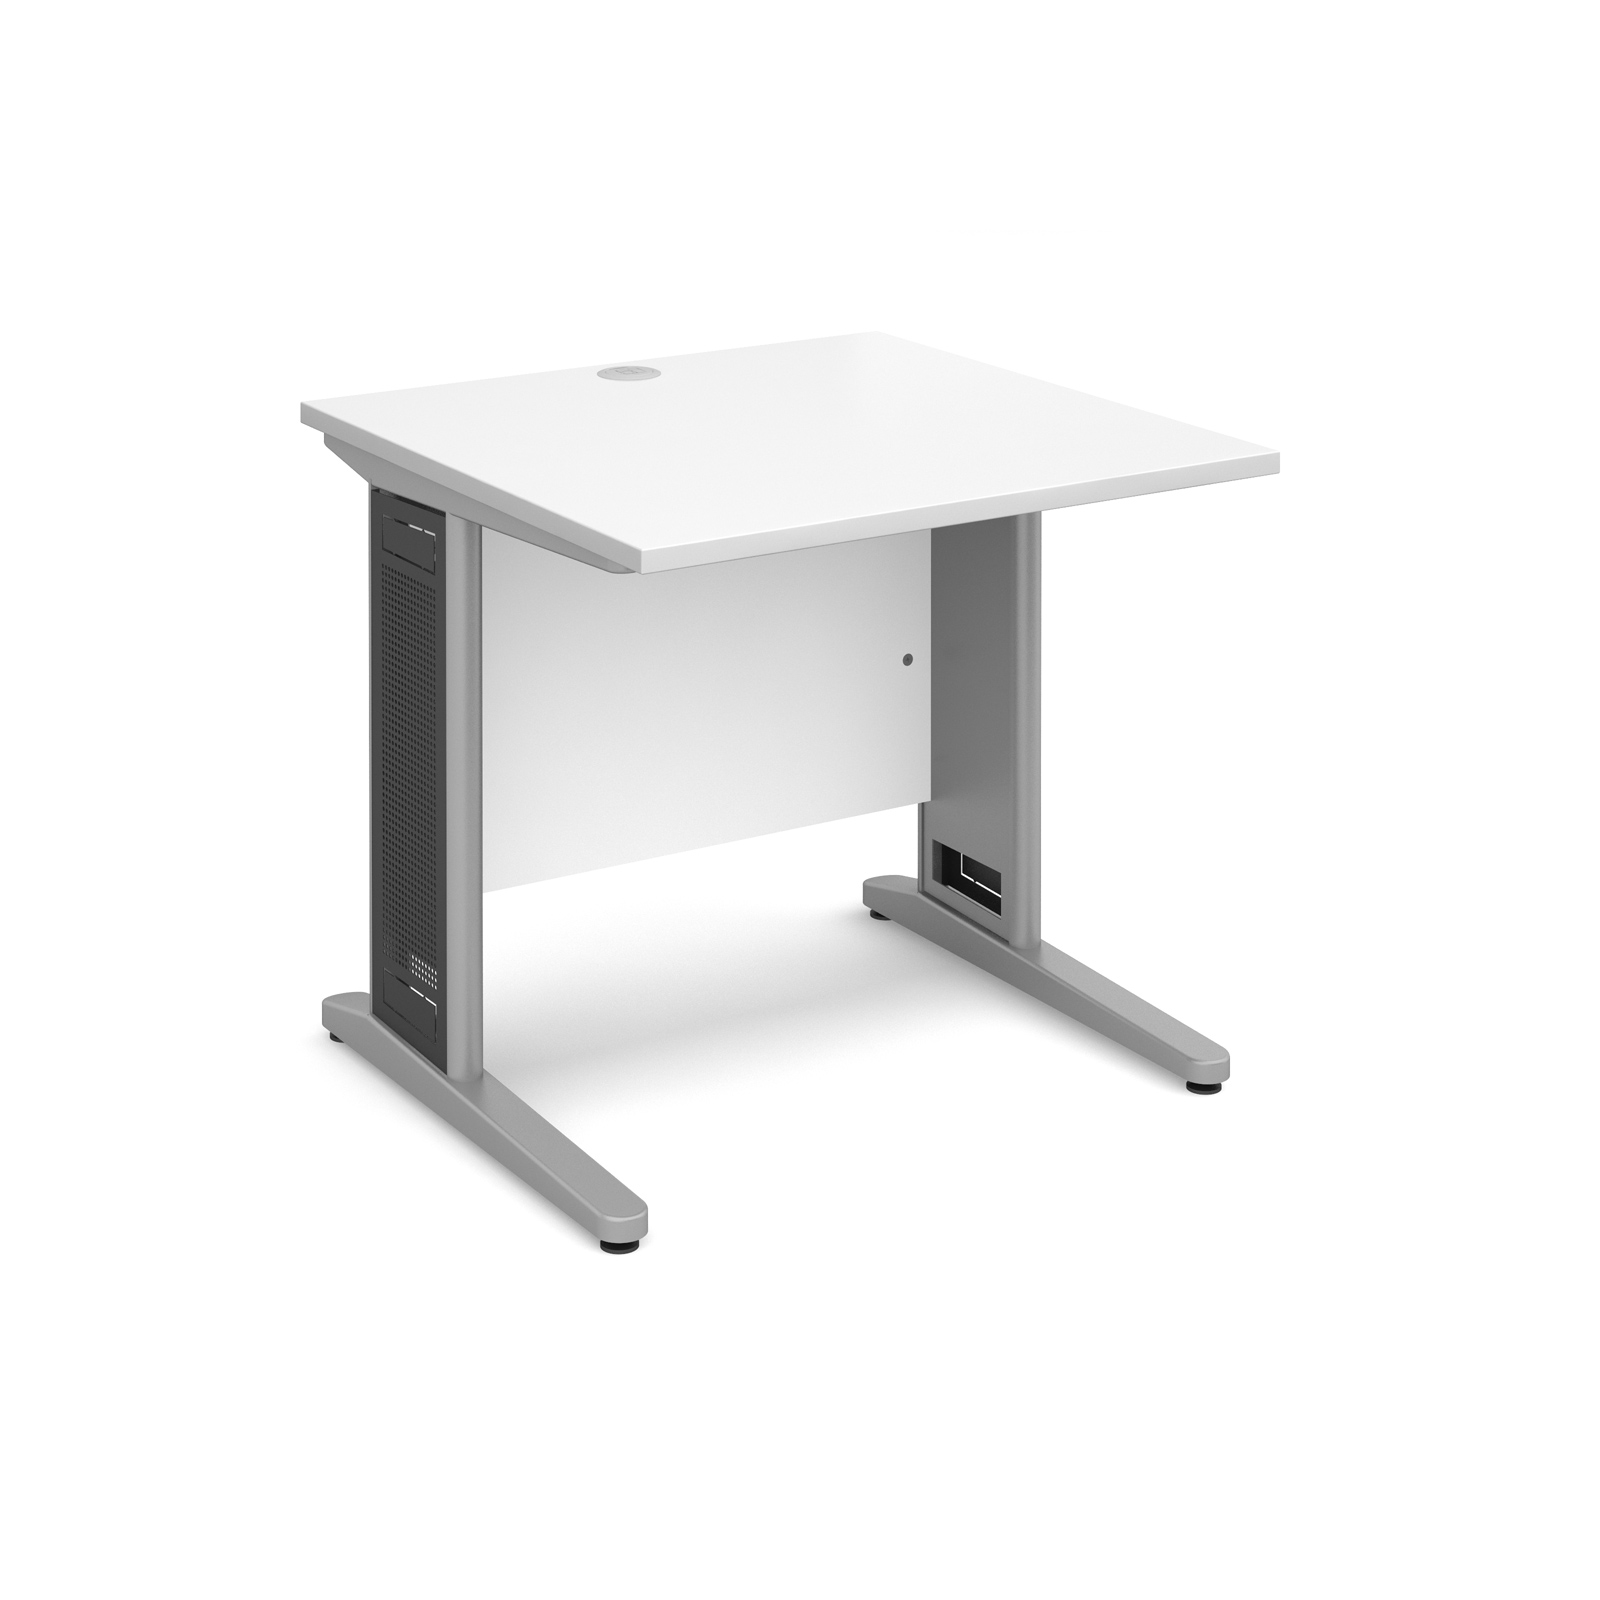 Largo straight desk 800mm x 800mm - silver cantilever frame with removable grill, white top